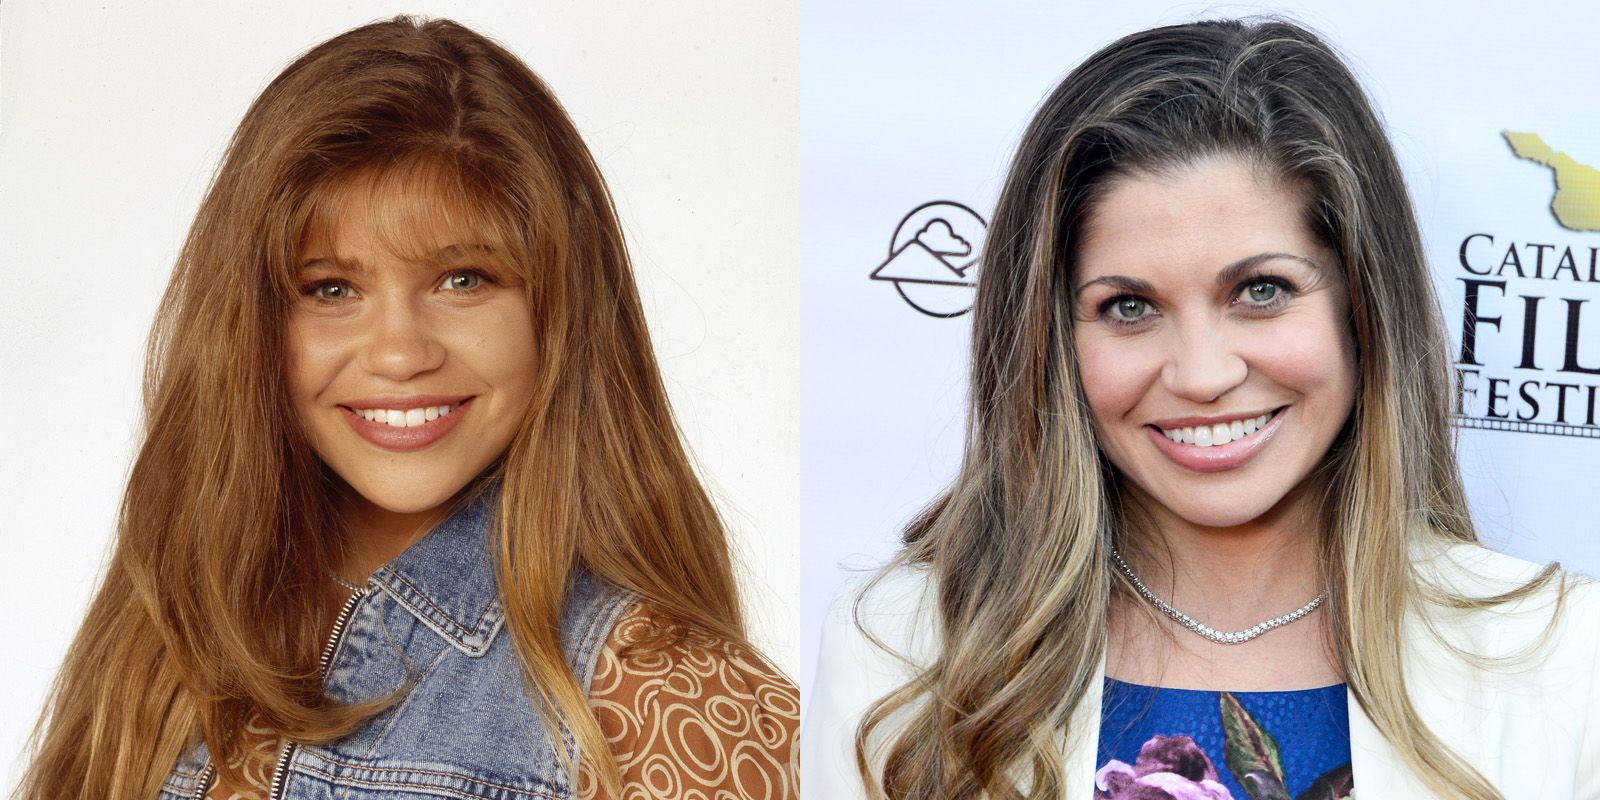 "<p>Cory's longtime love Topanga is also very much alive in 2015 with Fishel reprising her role on <em>Girl Meets World</em> as mom to her and Cory's daughter, Riley. She didn't do much work outside of short-lived, now forgotten TV shows and independent films. Side note: her hair is still fabulous.<span class=""redactor-invisible-space""></span></p><h1><i></i></h1>"